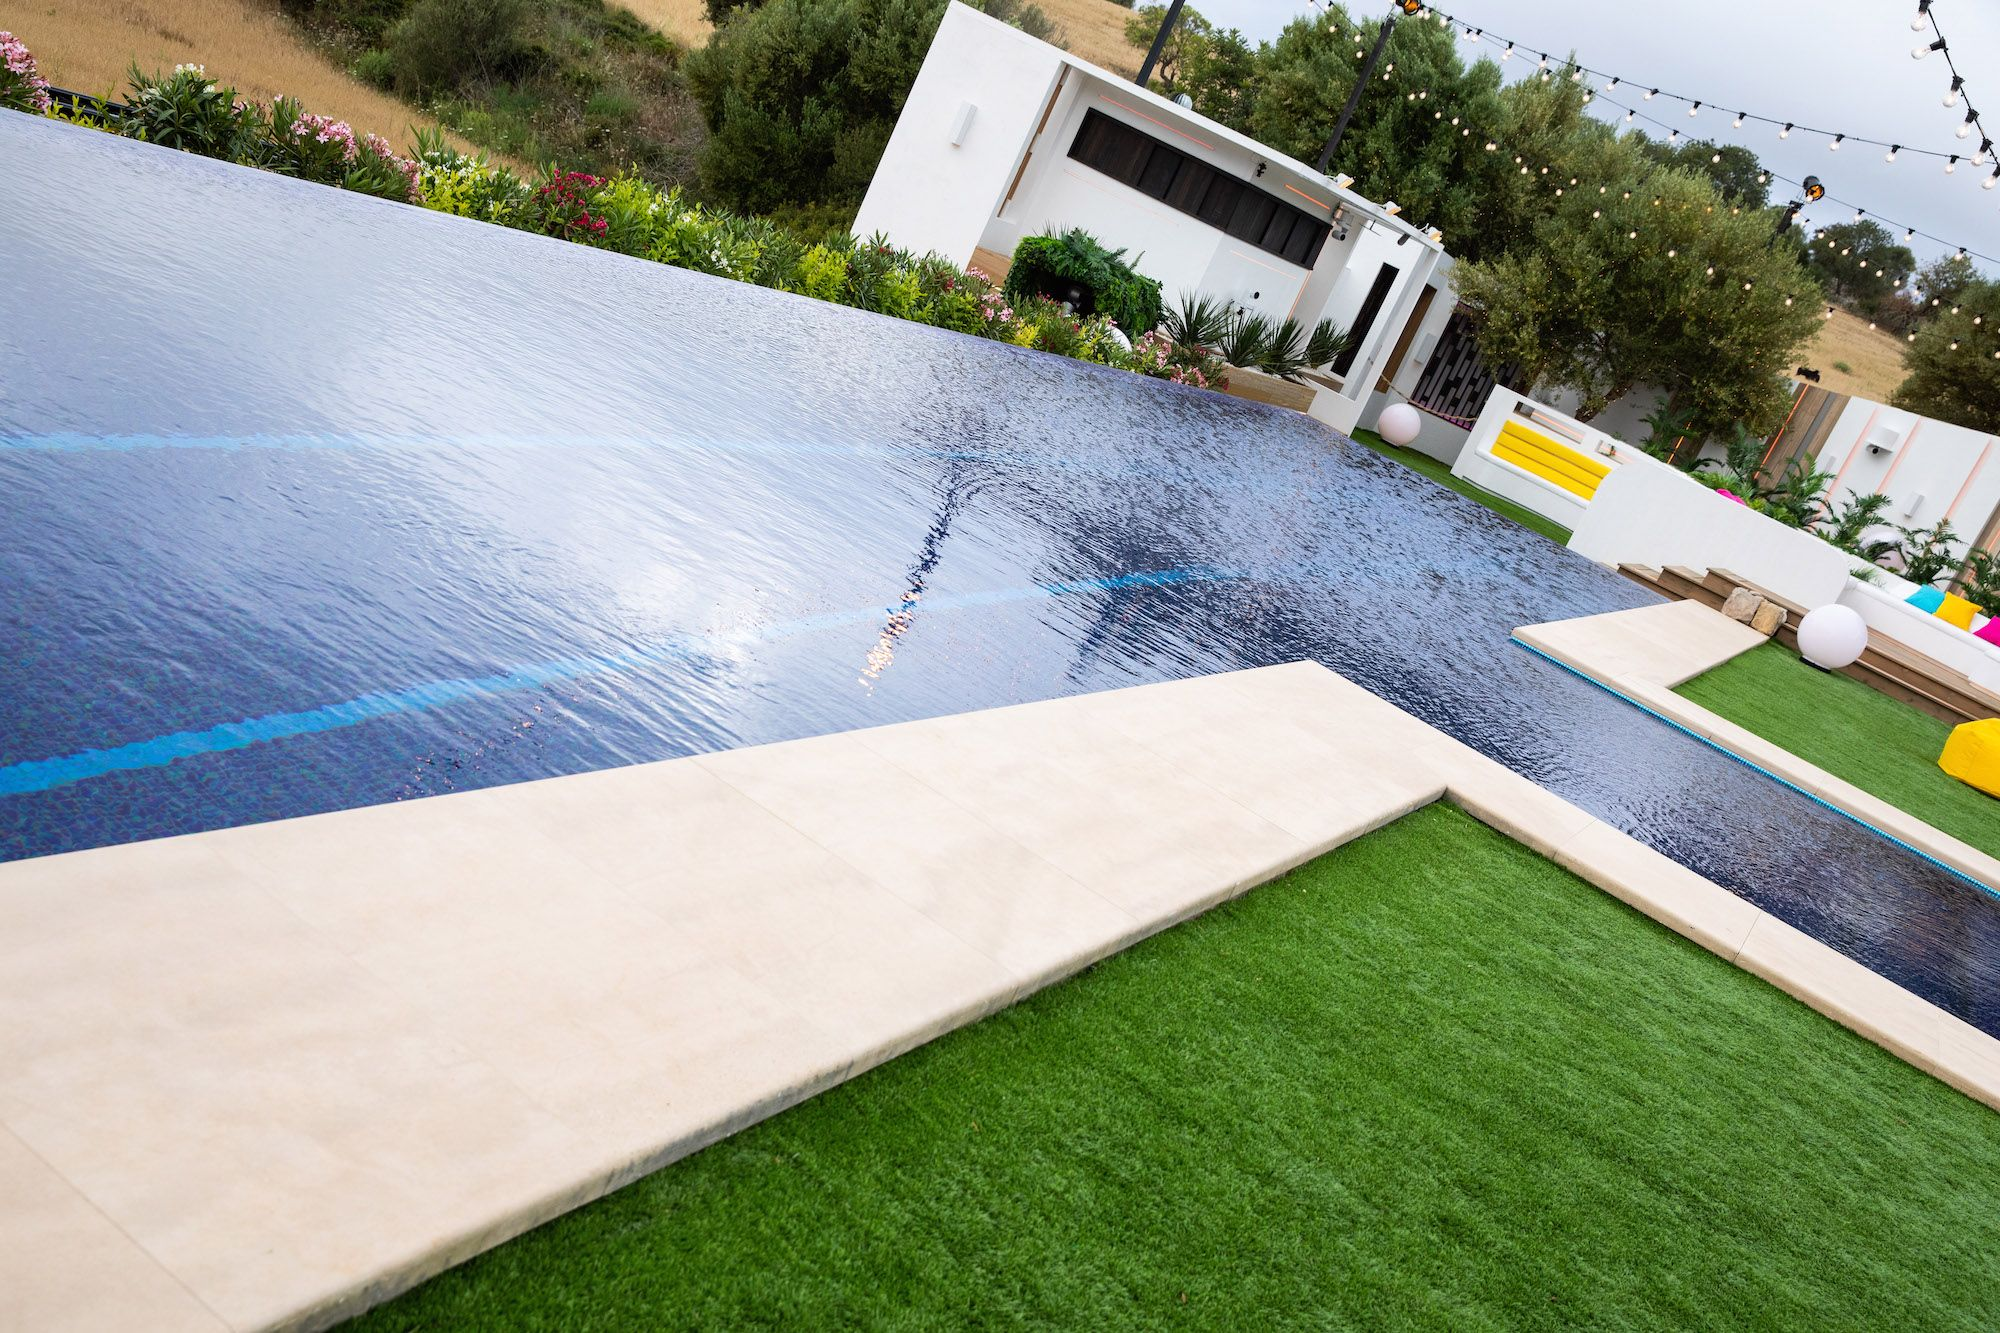 Image may contain: Love Island villa, Love Island 2019, villa, location, inside, first look, Sant Llorenç des Cardassar, Majorca, Outdoors, Hotel, Rug, Swimming Pool, Building, Pool, Water, Grass, Plant